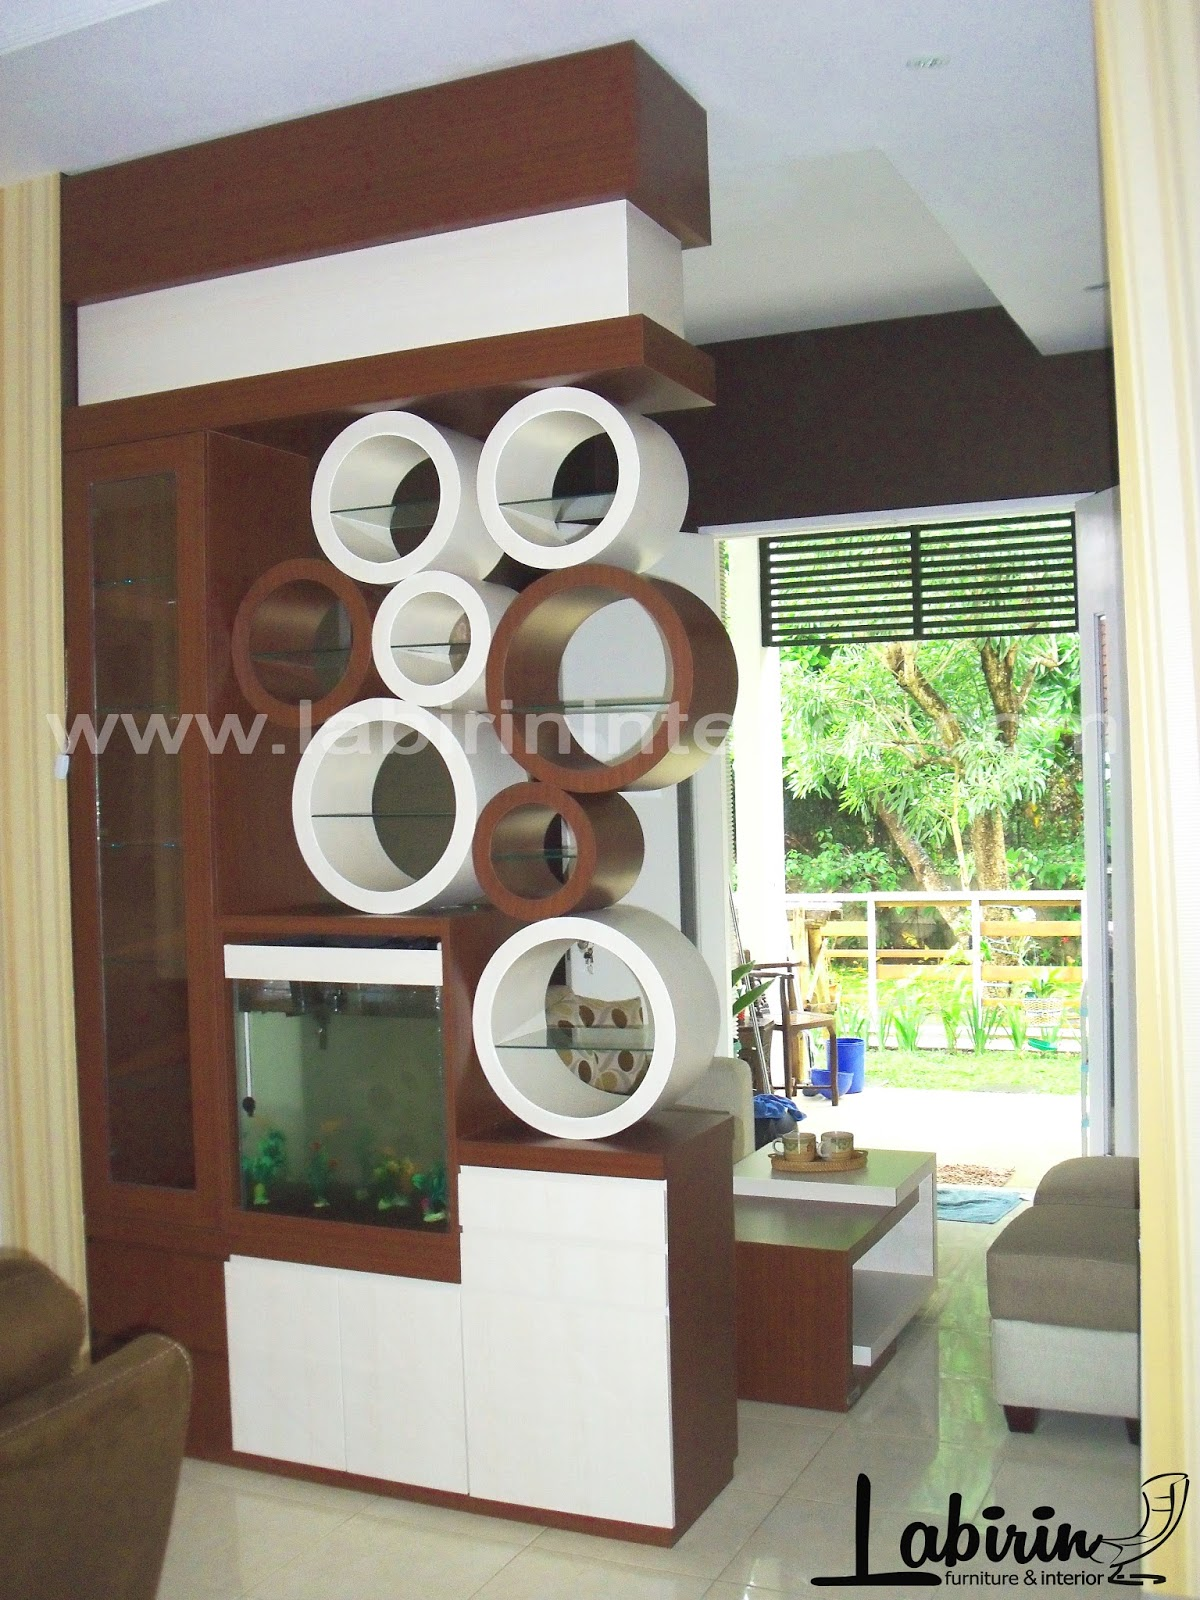 PARTISI 2 SISI SOFA SET COFFE TABLE BAPAK ZULFIKAR